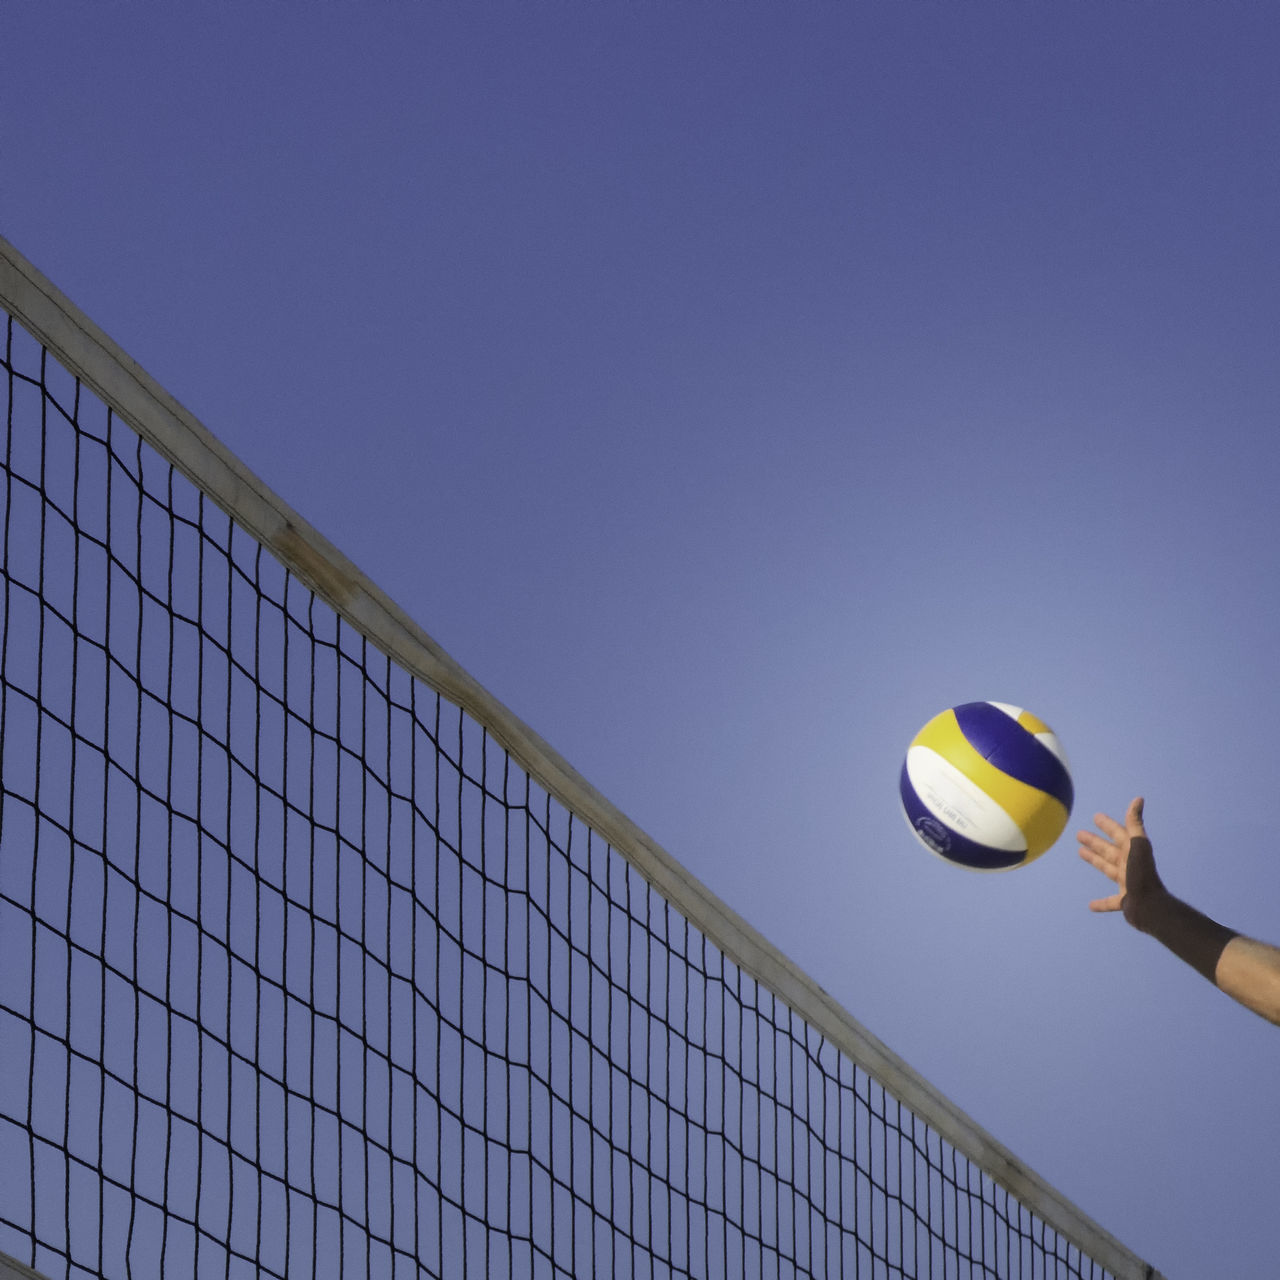 Beautiful stock photos of volleyball, sport, volleyball - sport, clear sky, beach volleyball